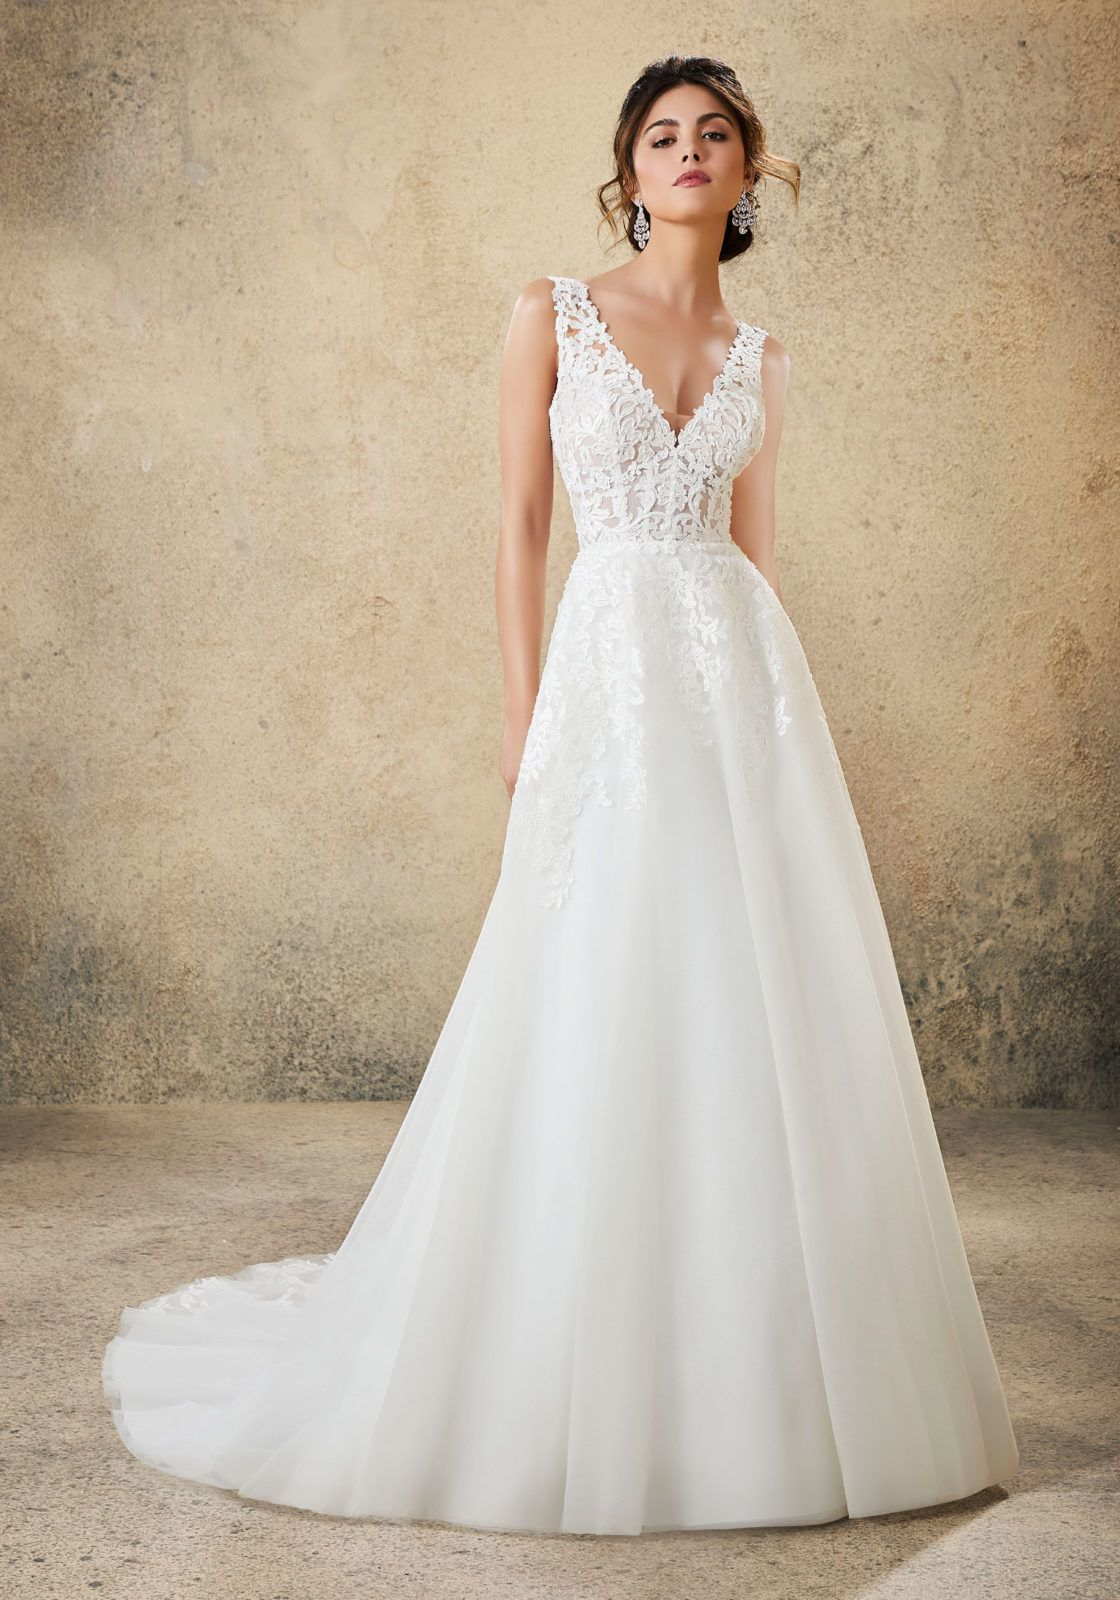 Rosemarie Wedding Dress Morilee in 2020 Bridal wedding